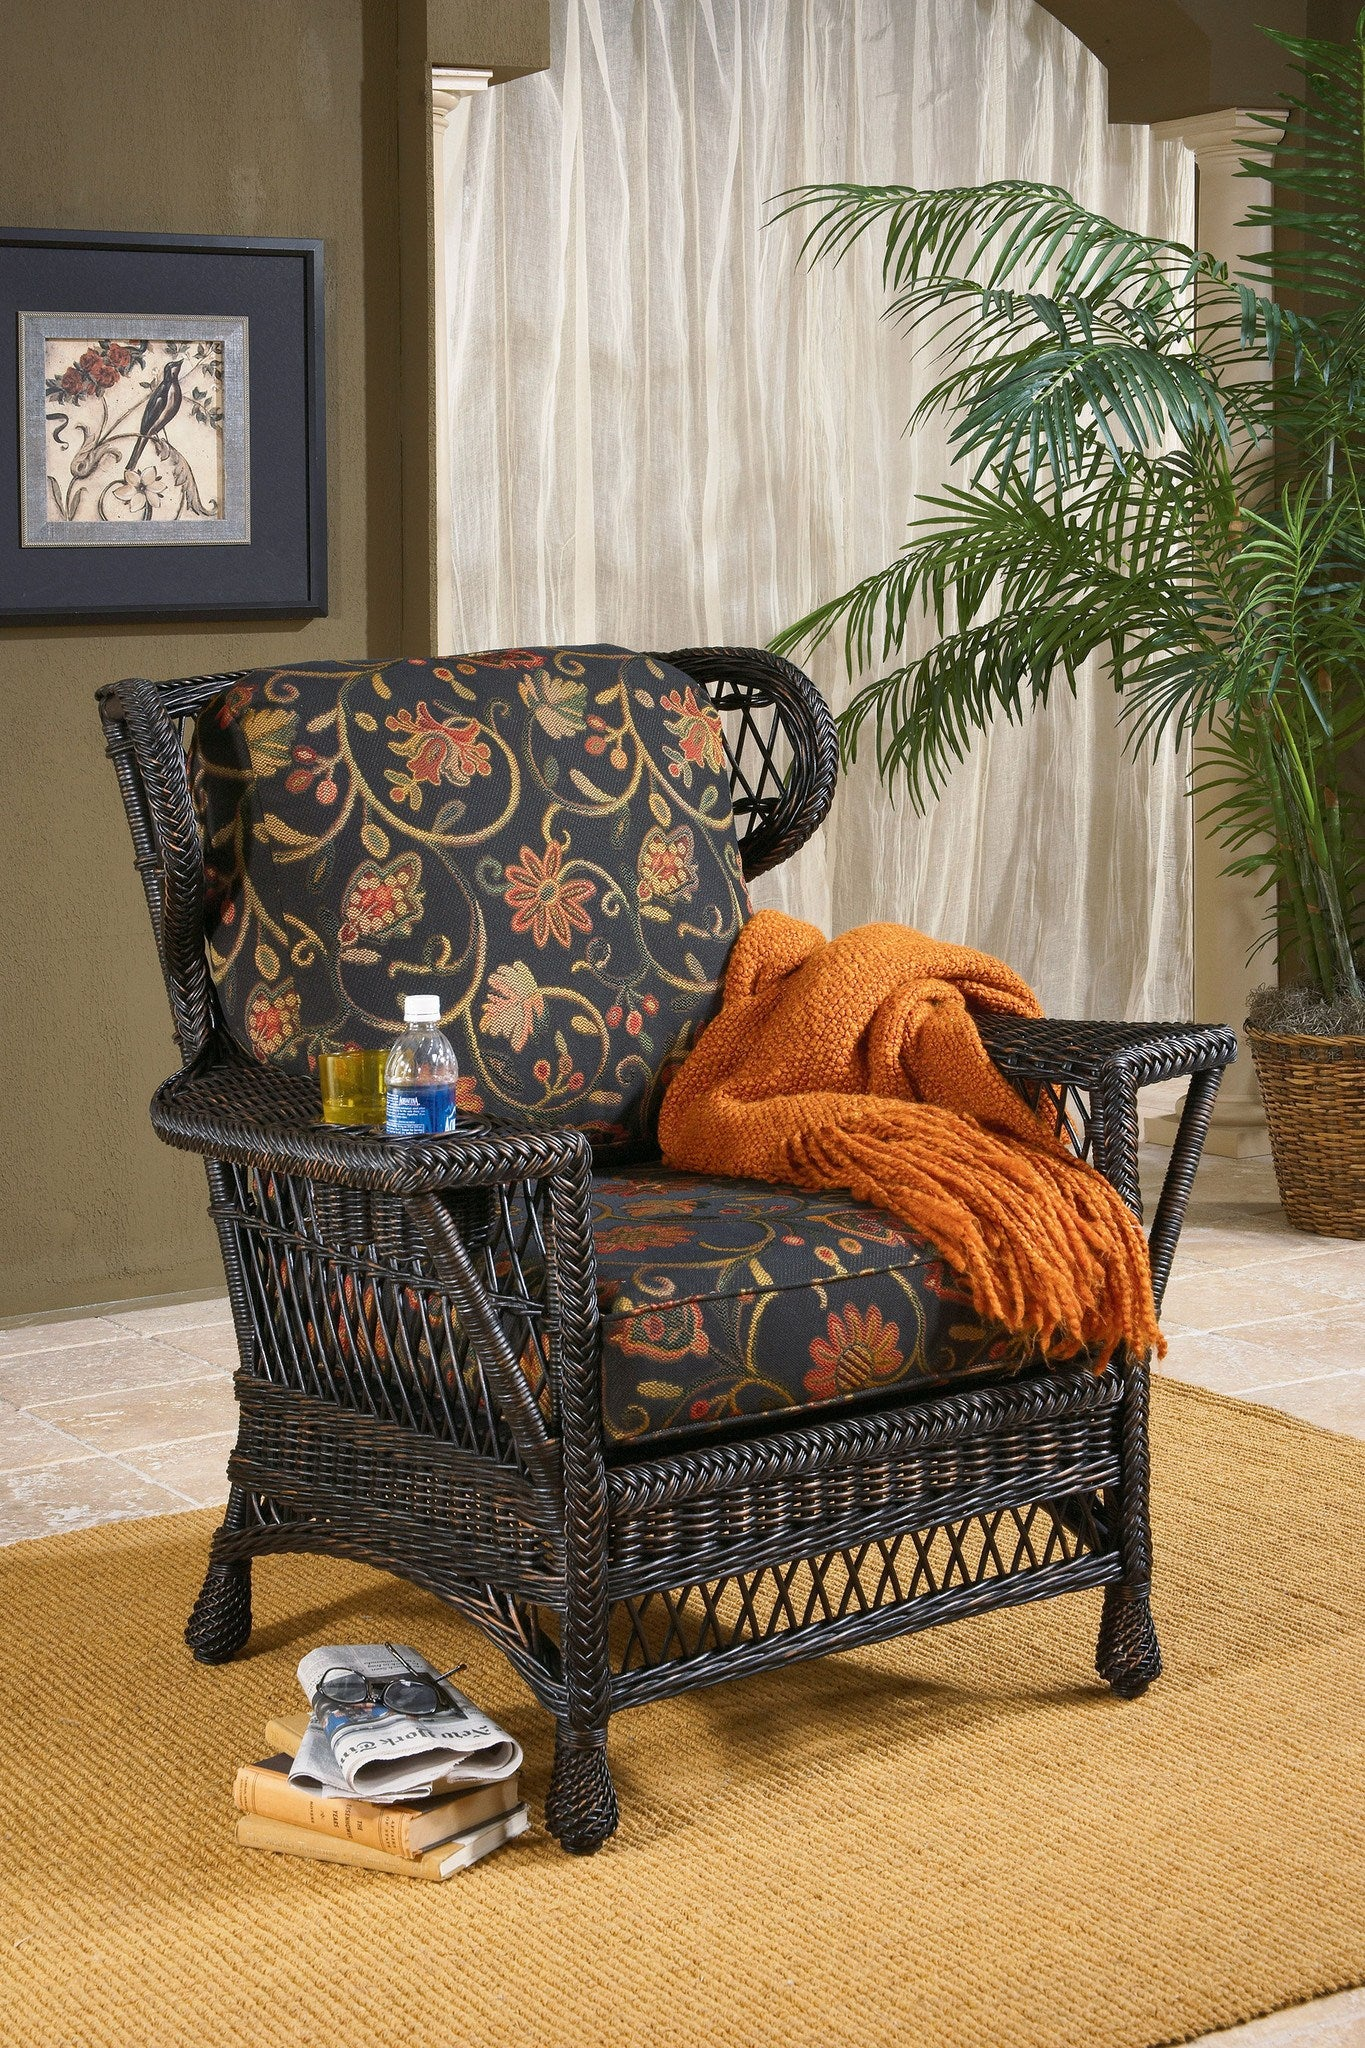 Designer Wicker & Rattan By Tribor Designer Wicker by Tribor Bar Harbor Wing Chair Chair - Rattan Imports